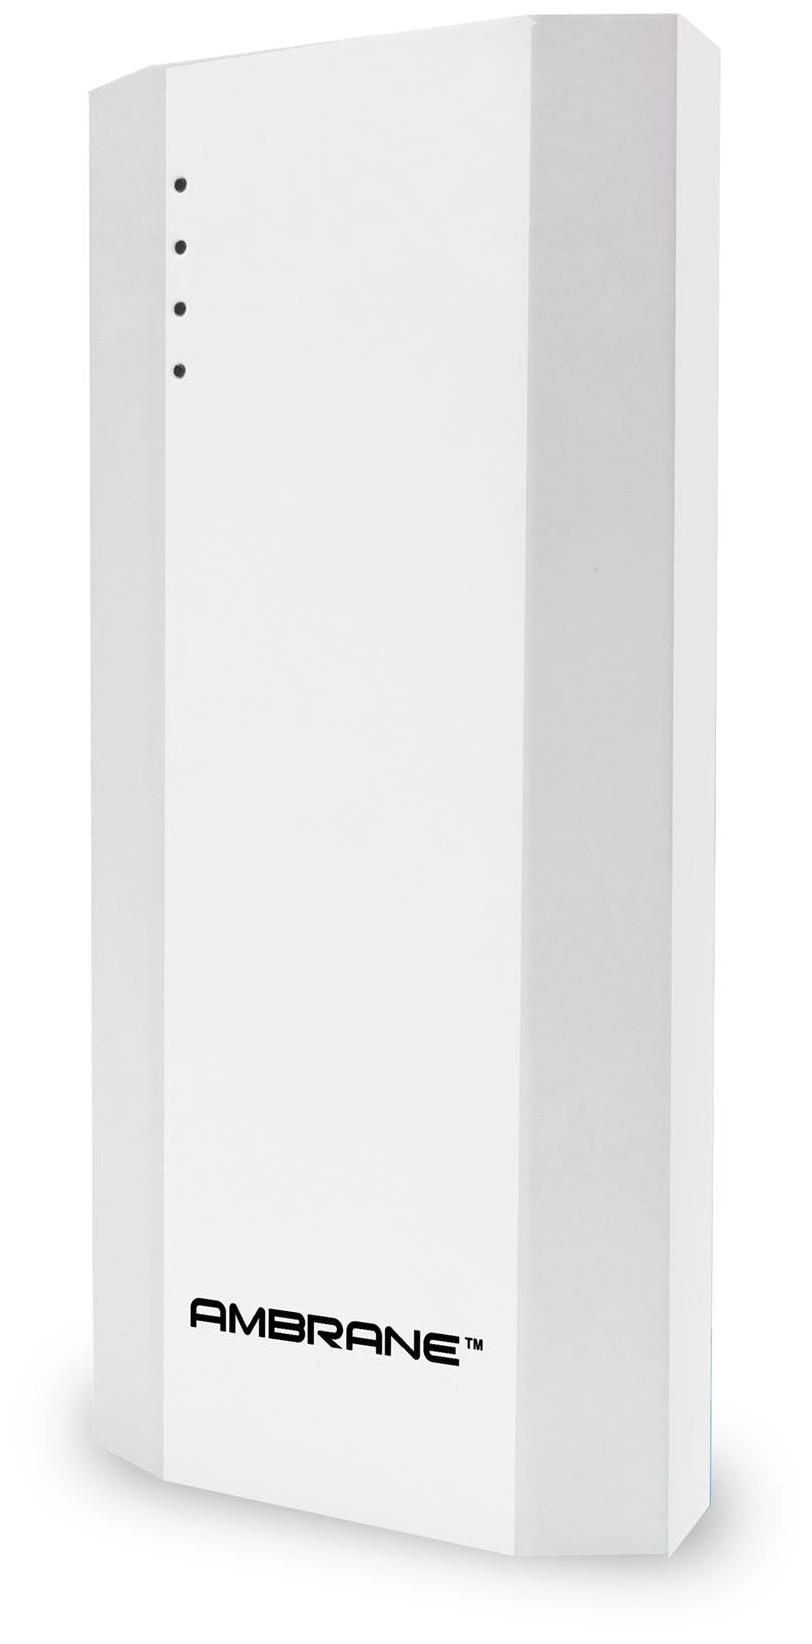 Ambrane P-1111 10000mAh Power Bank (White)